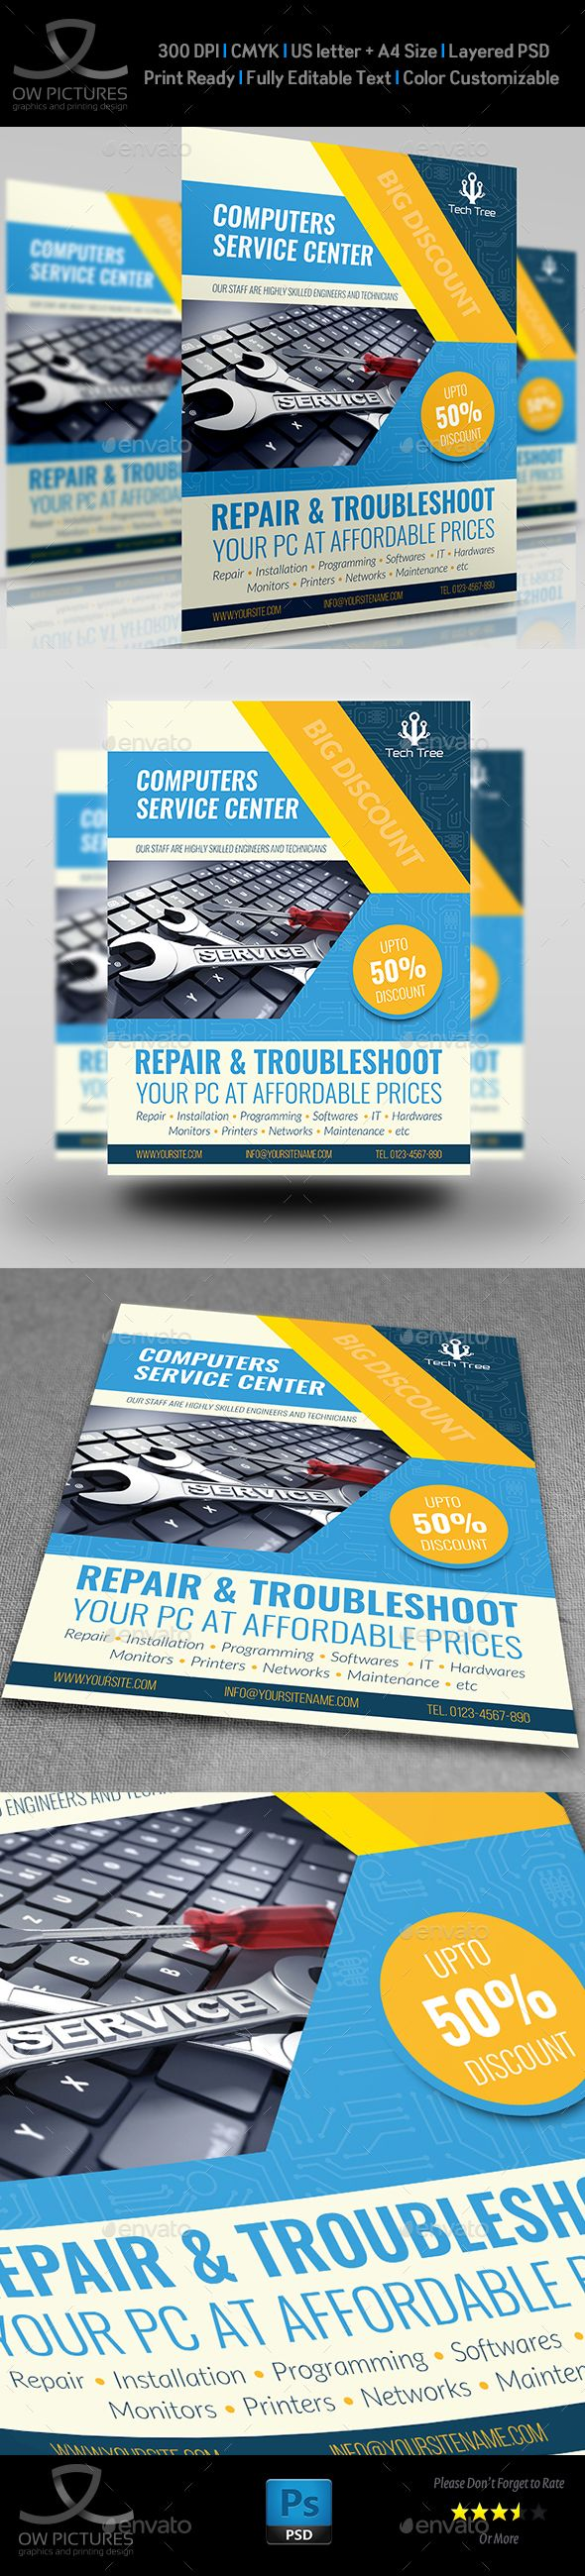 Computer Services Flyer Template - #Commerce #Flyers